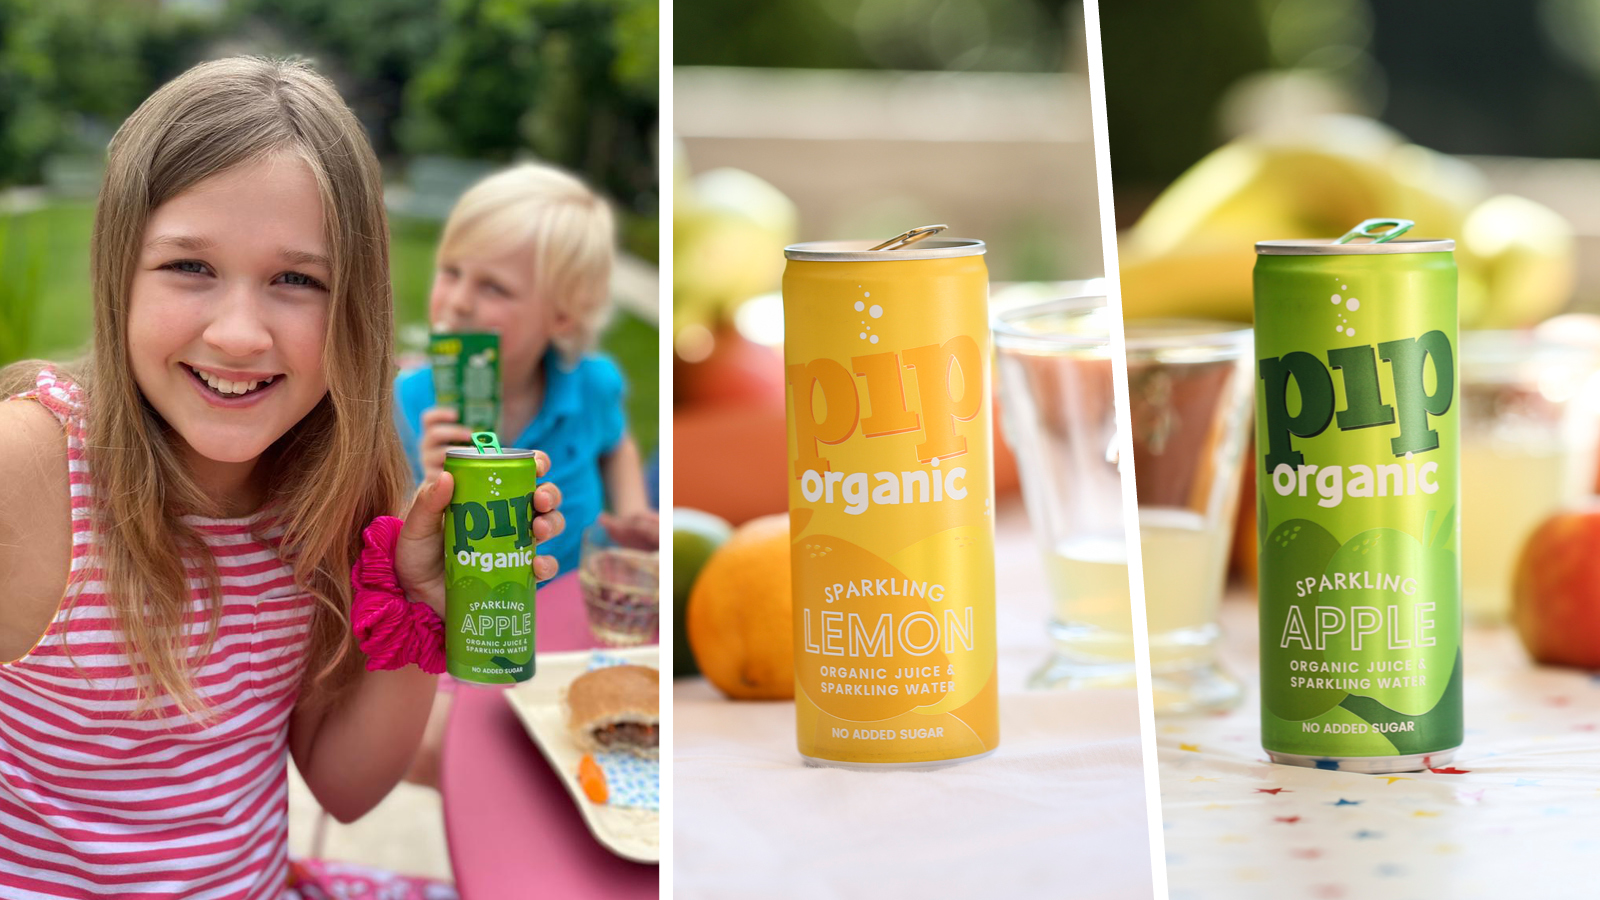 Pip sparkling cans